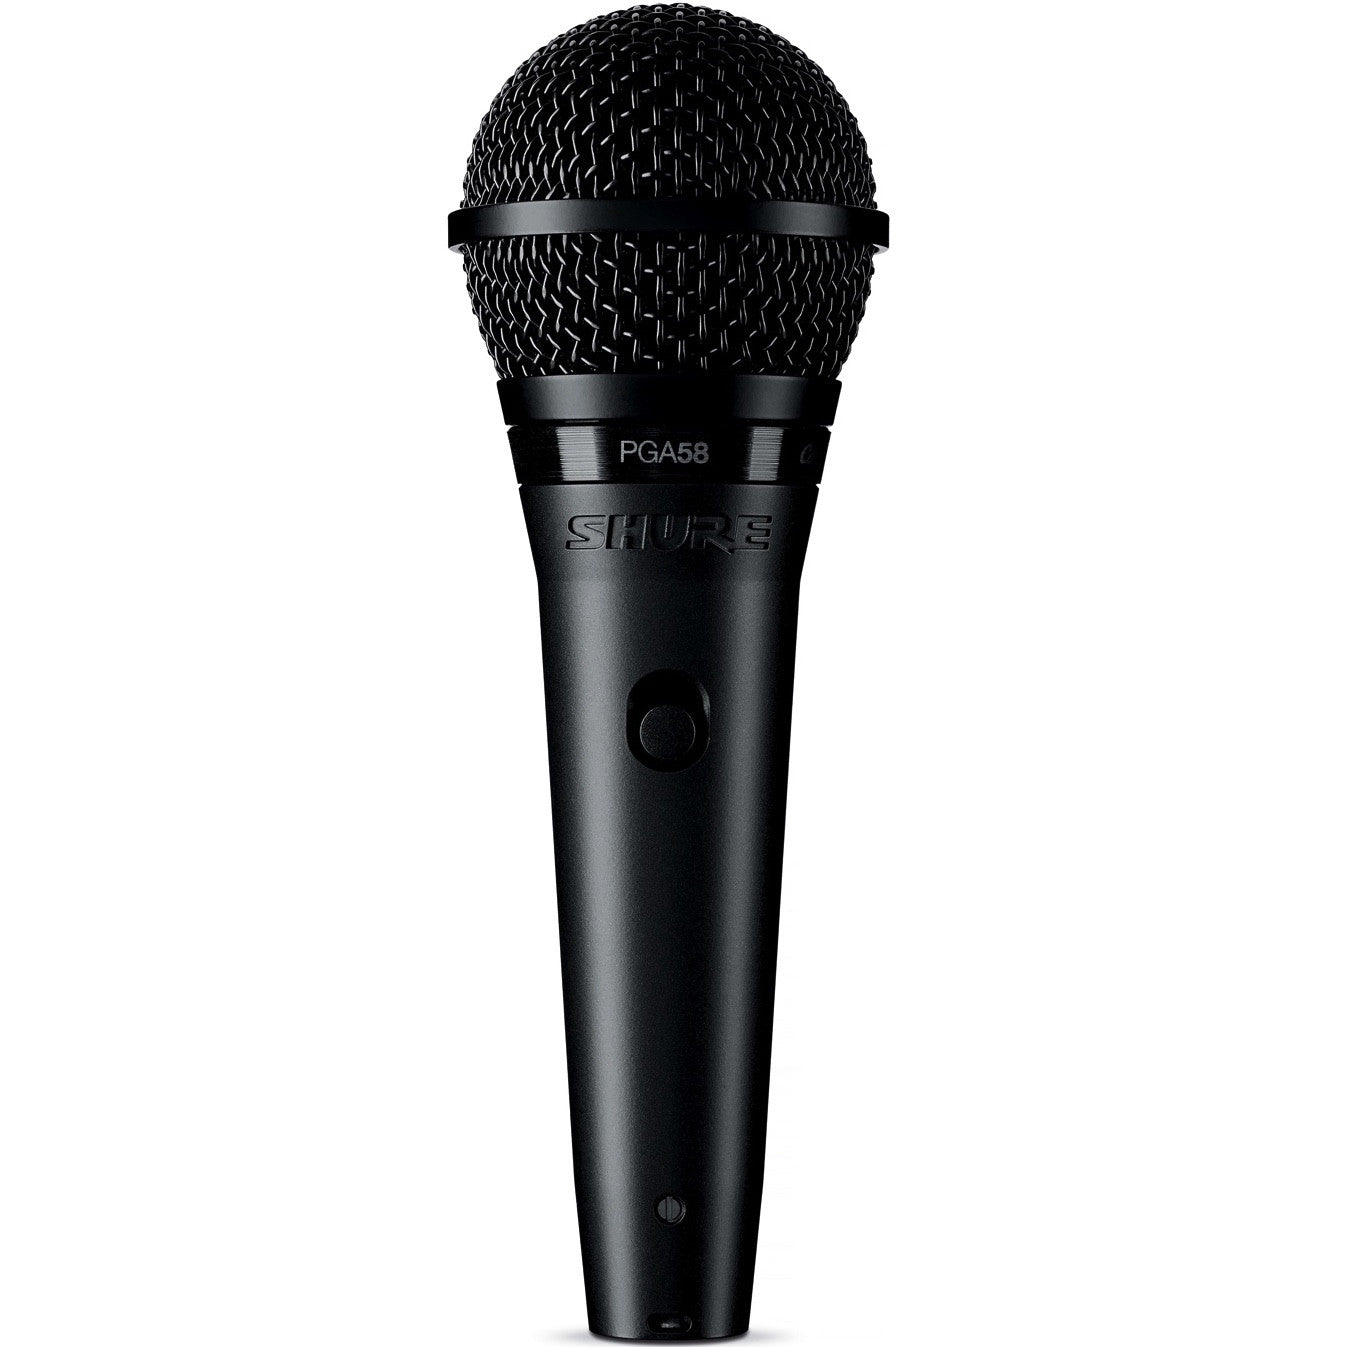 Shure PGA58 Handheld Dynamic Vocal Microphone | Music Experience | Shop Online | South Africa